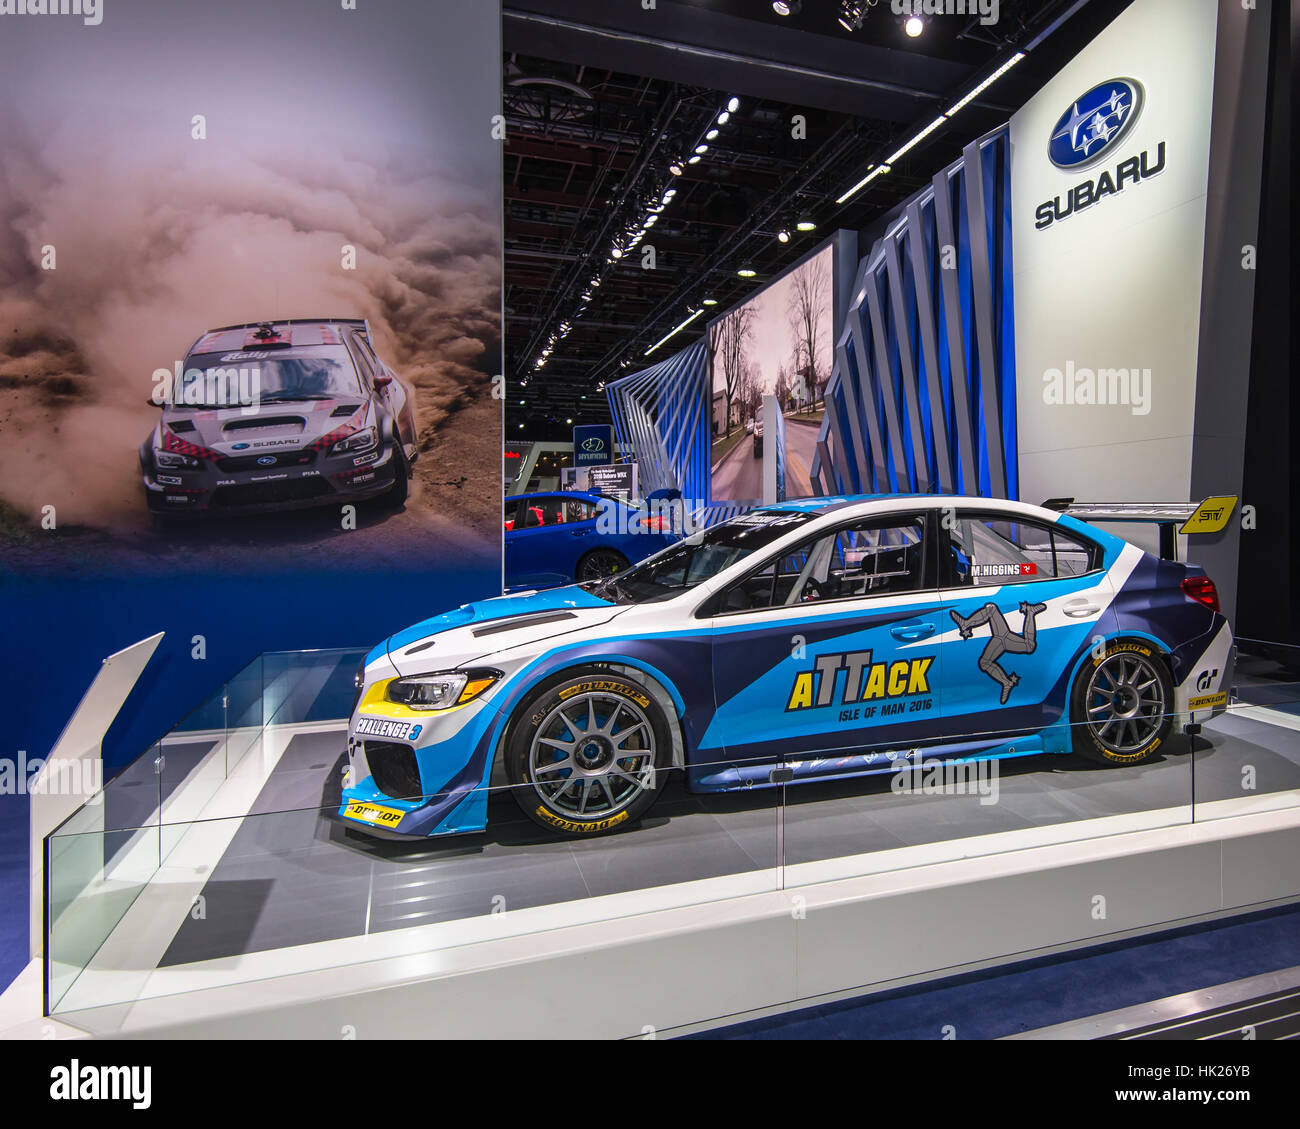 Wrx Sti Stock Photos & Wrx Sti Stock Images